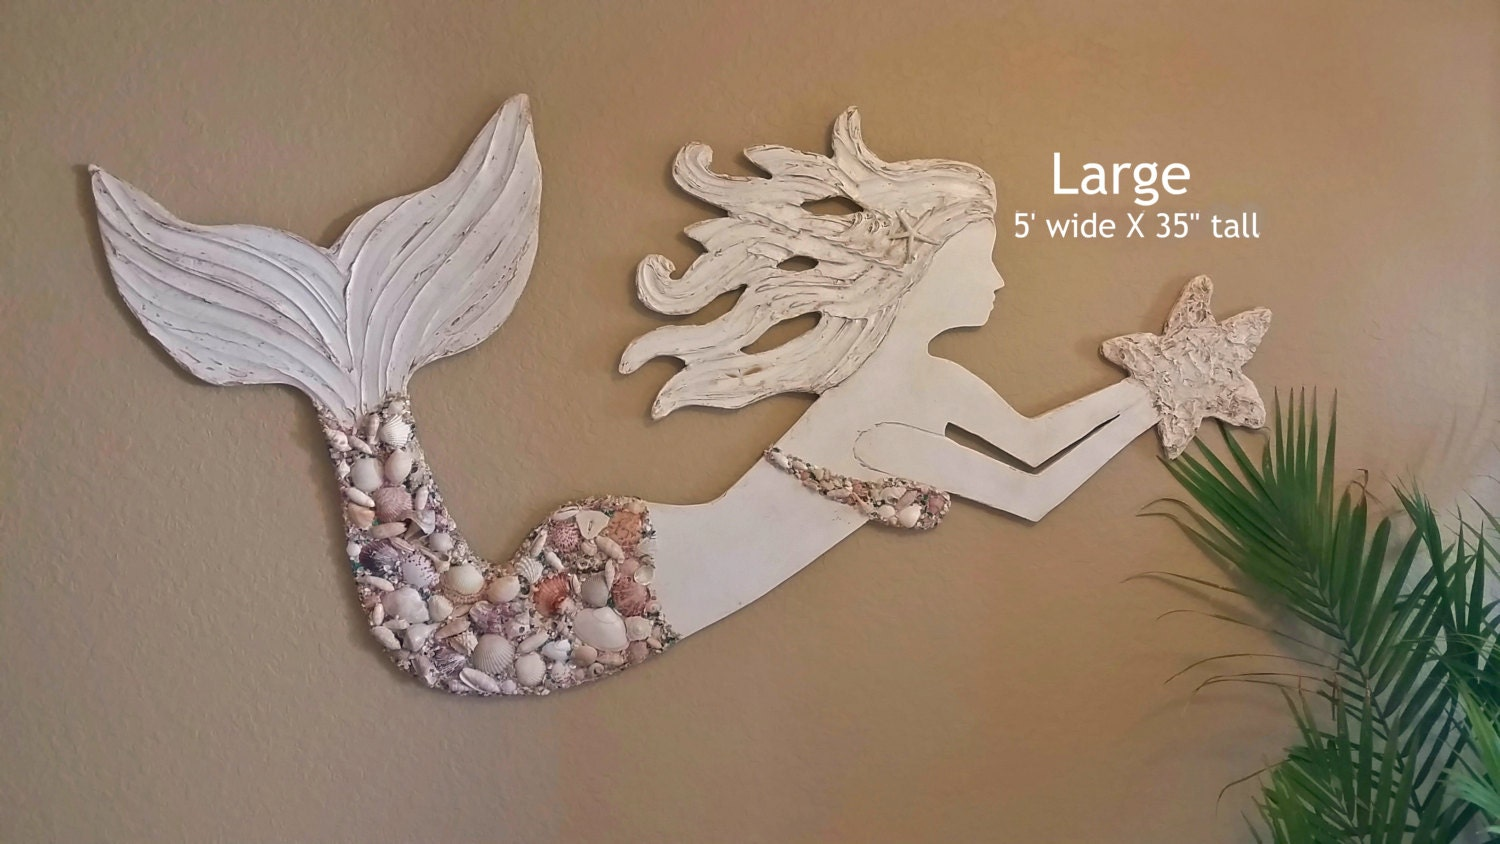 Mermaid Wall Art Large Size Handmade Wood By Lucydesignsonline